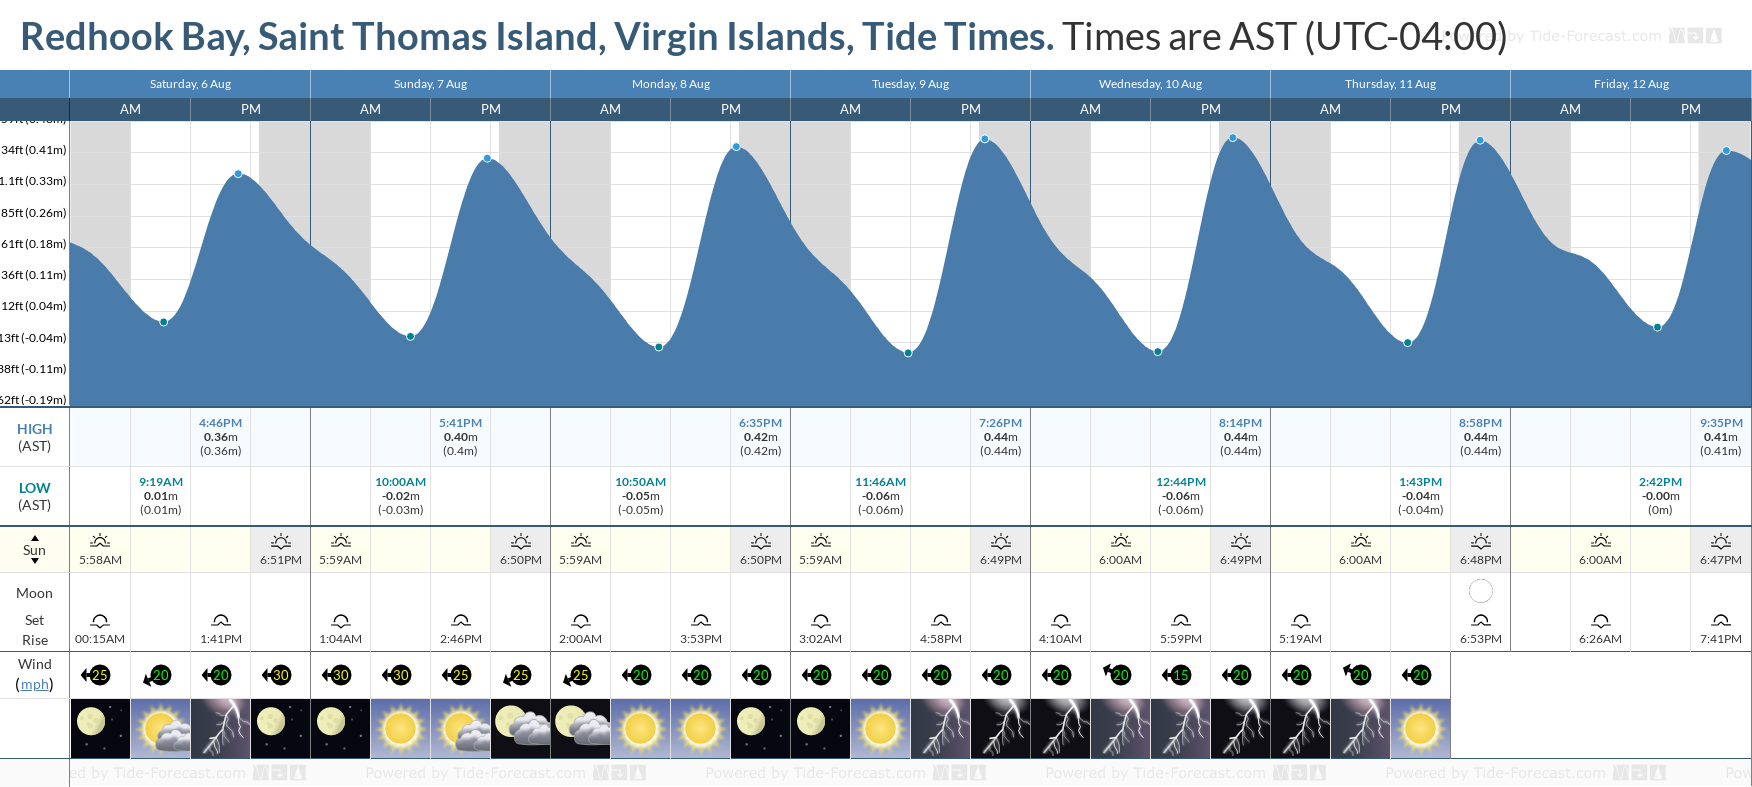 Redhook Bay, Saint Thomas Island, Virgin Islands Tide Chart including high and low tide tide times for the next 7 days